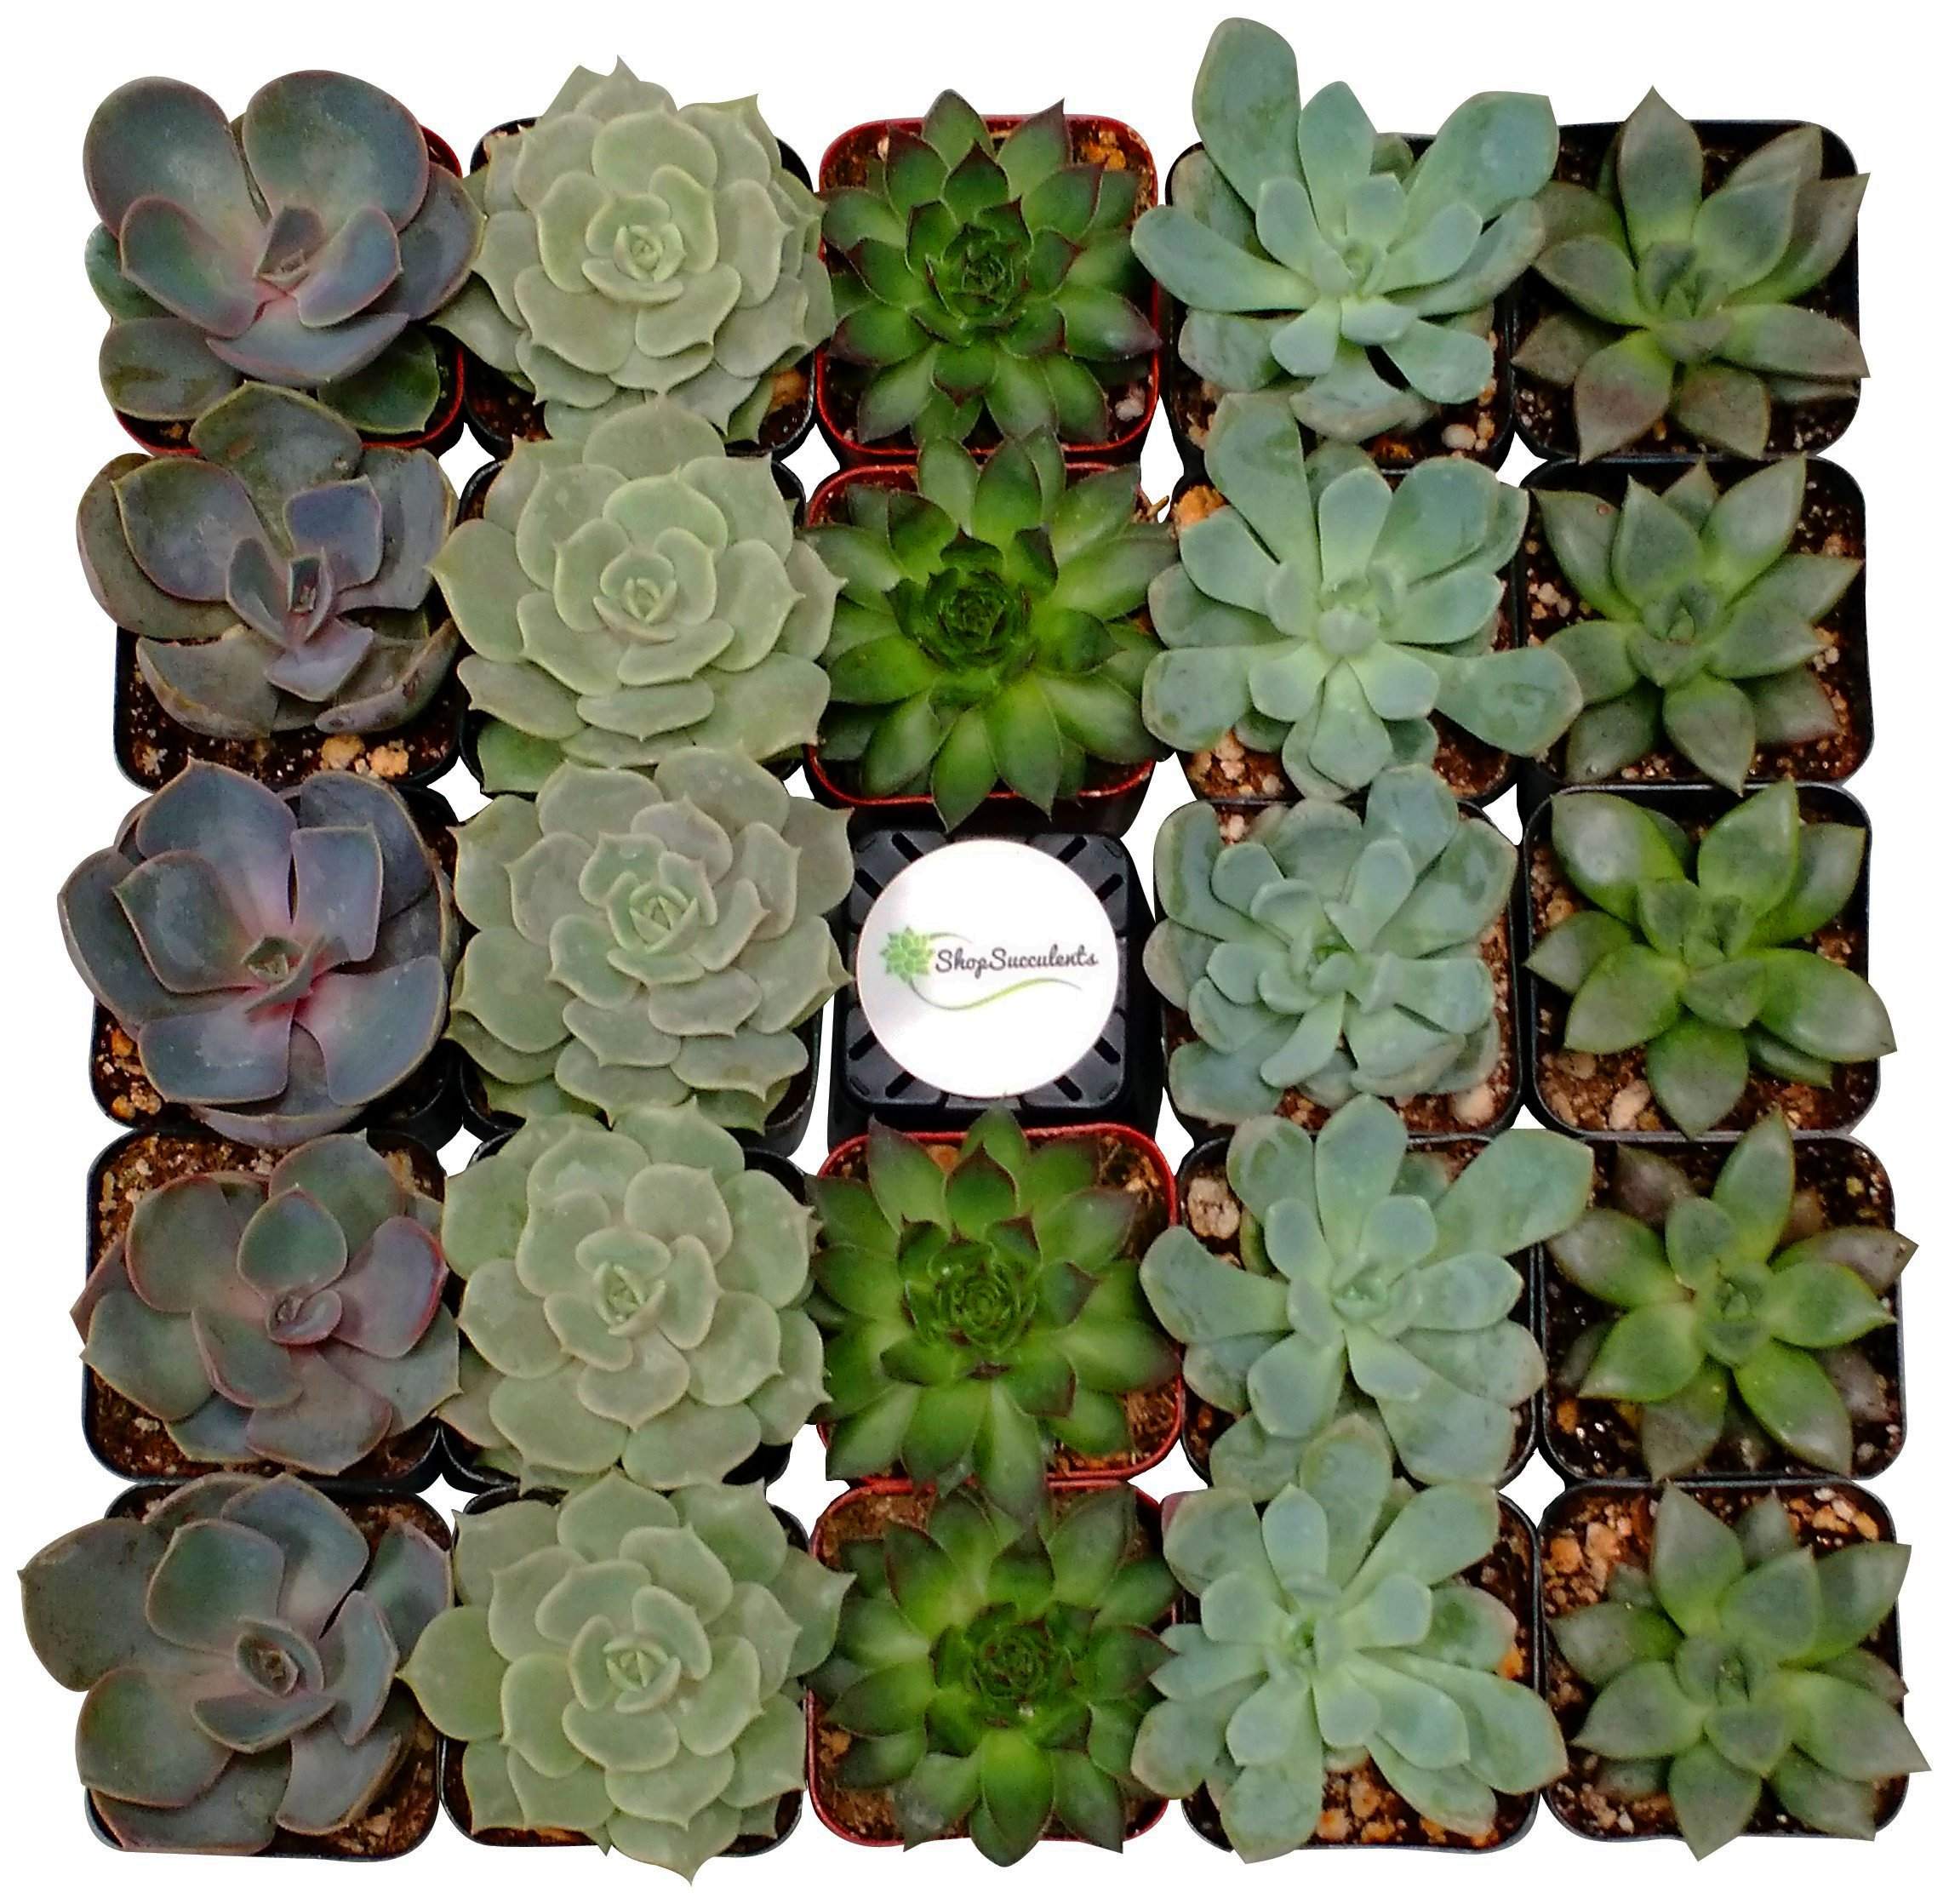 Shop Succulents Assorted Succulent (Collection of 256) by Shop Succulents